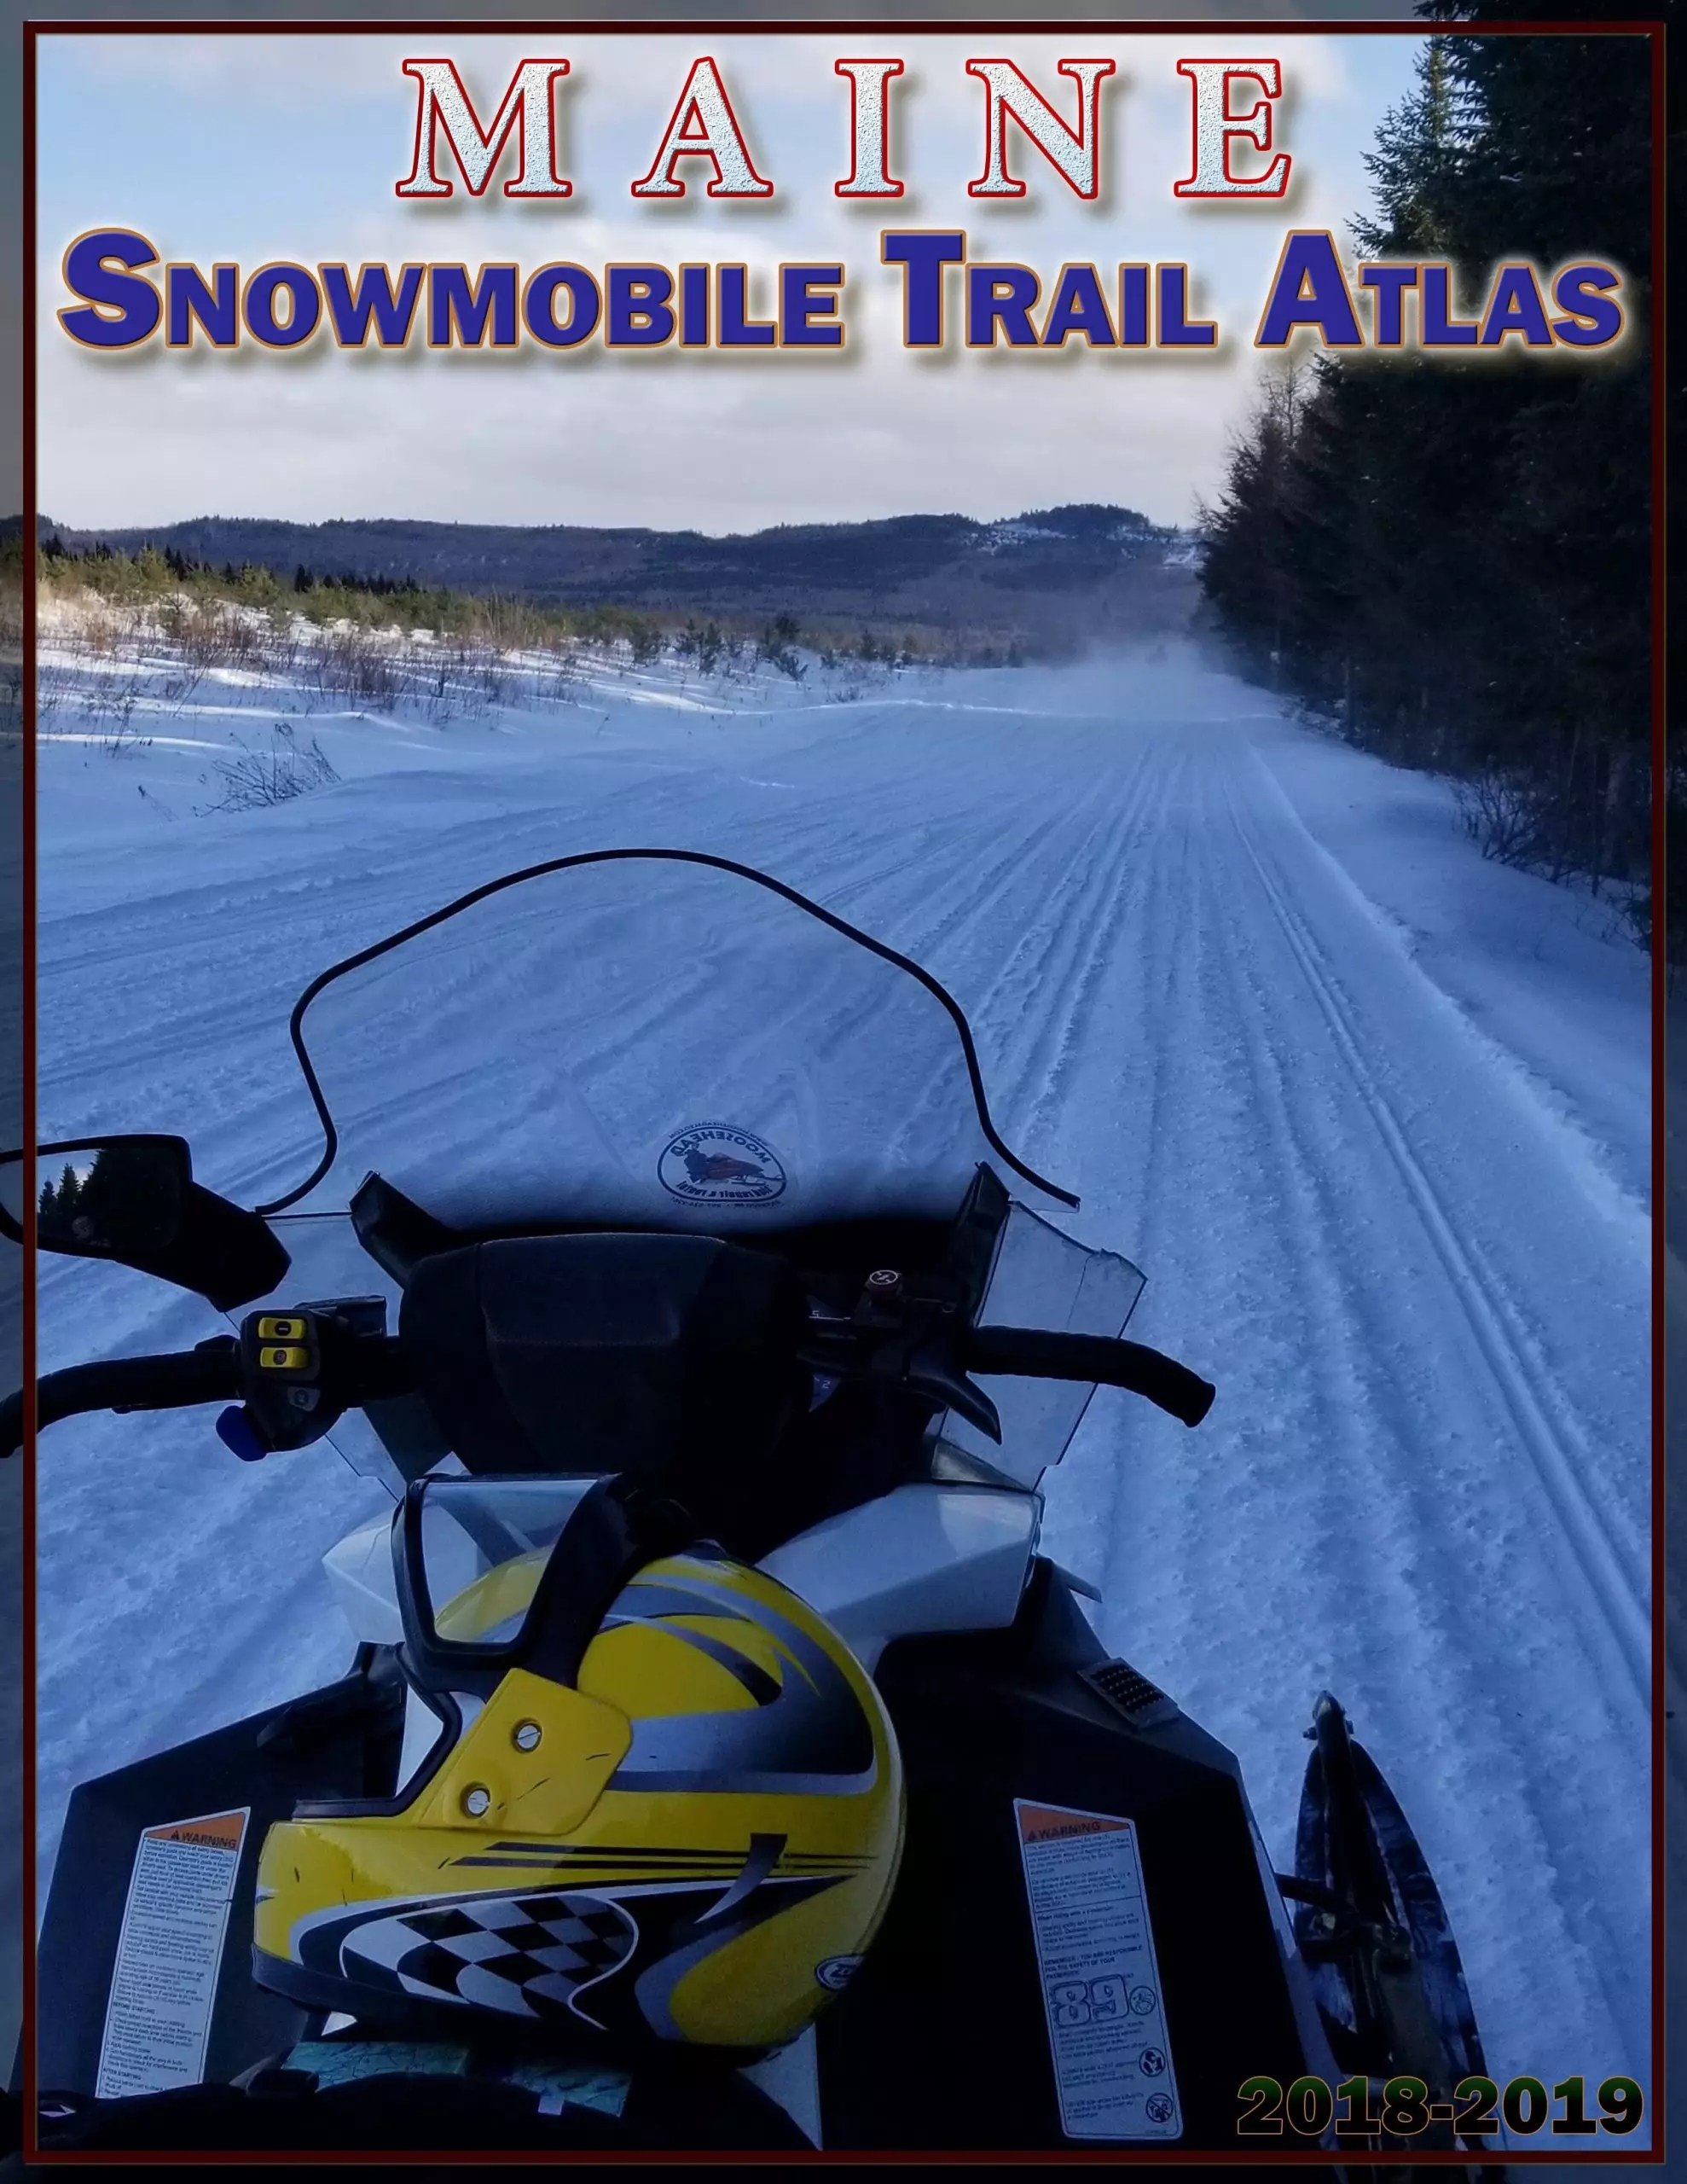 2018-2019 Maine Snowmobile Trail Map - Printed Atlas on northern maine road maps, maine wildlife management districts, maine woods map, maine wine trail, parsonsfield maine map google maps, maine canada border towns, maine county map with population, winds rivers range trails maps, town of hermon tax maps, sc trail maps, maine its map, maine lakes depth charts, allagash wilderness waterway river maps, maine civil war museum, maine atv trail system, maine atv trails by county, eagle cap trail maps, maine mt. katahdin trails, maine eastern trail bike, houlton maine tax maps,